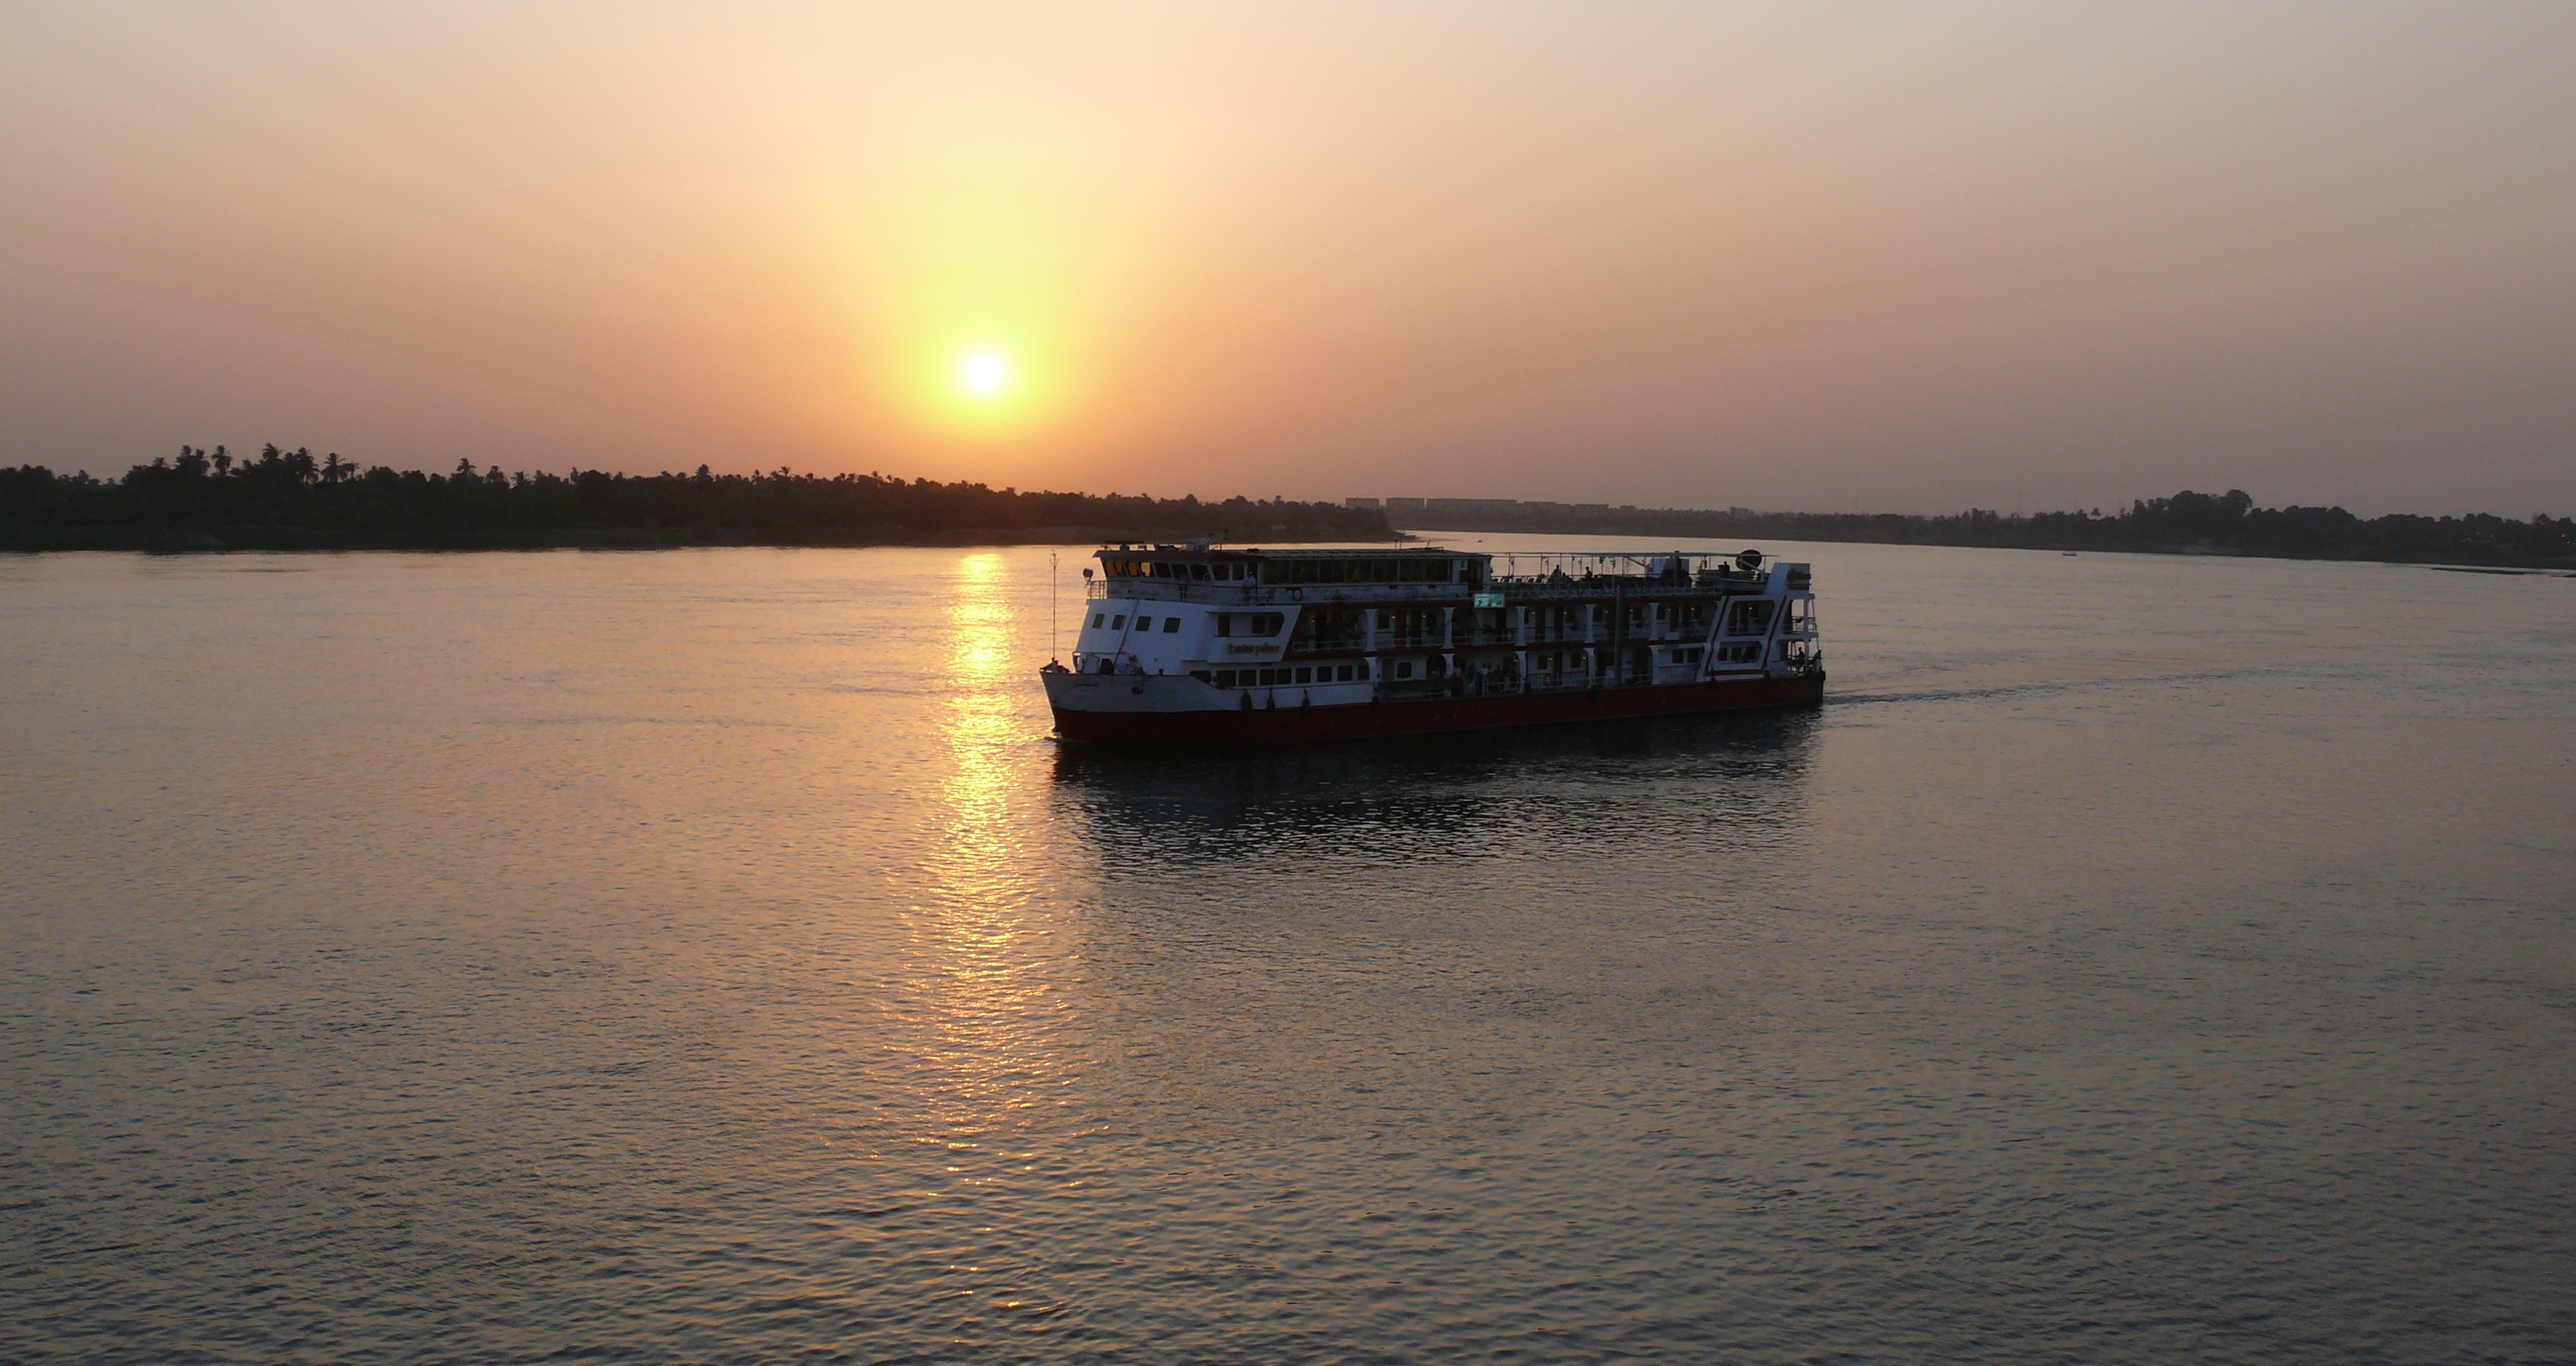 Cruise ship on the Nile heads off into the sunset. Photo courtesy of Ad Meskens via Wikimedia Commons.